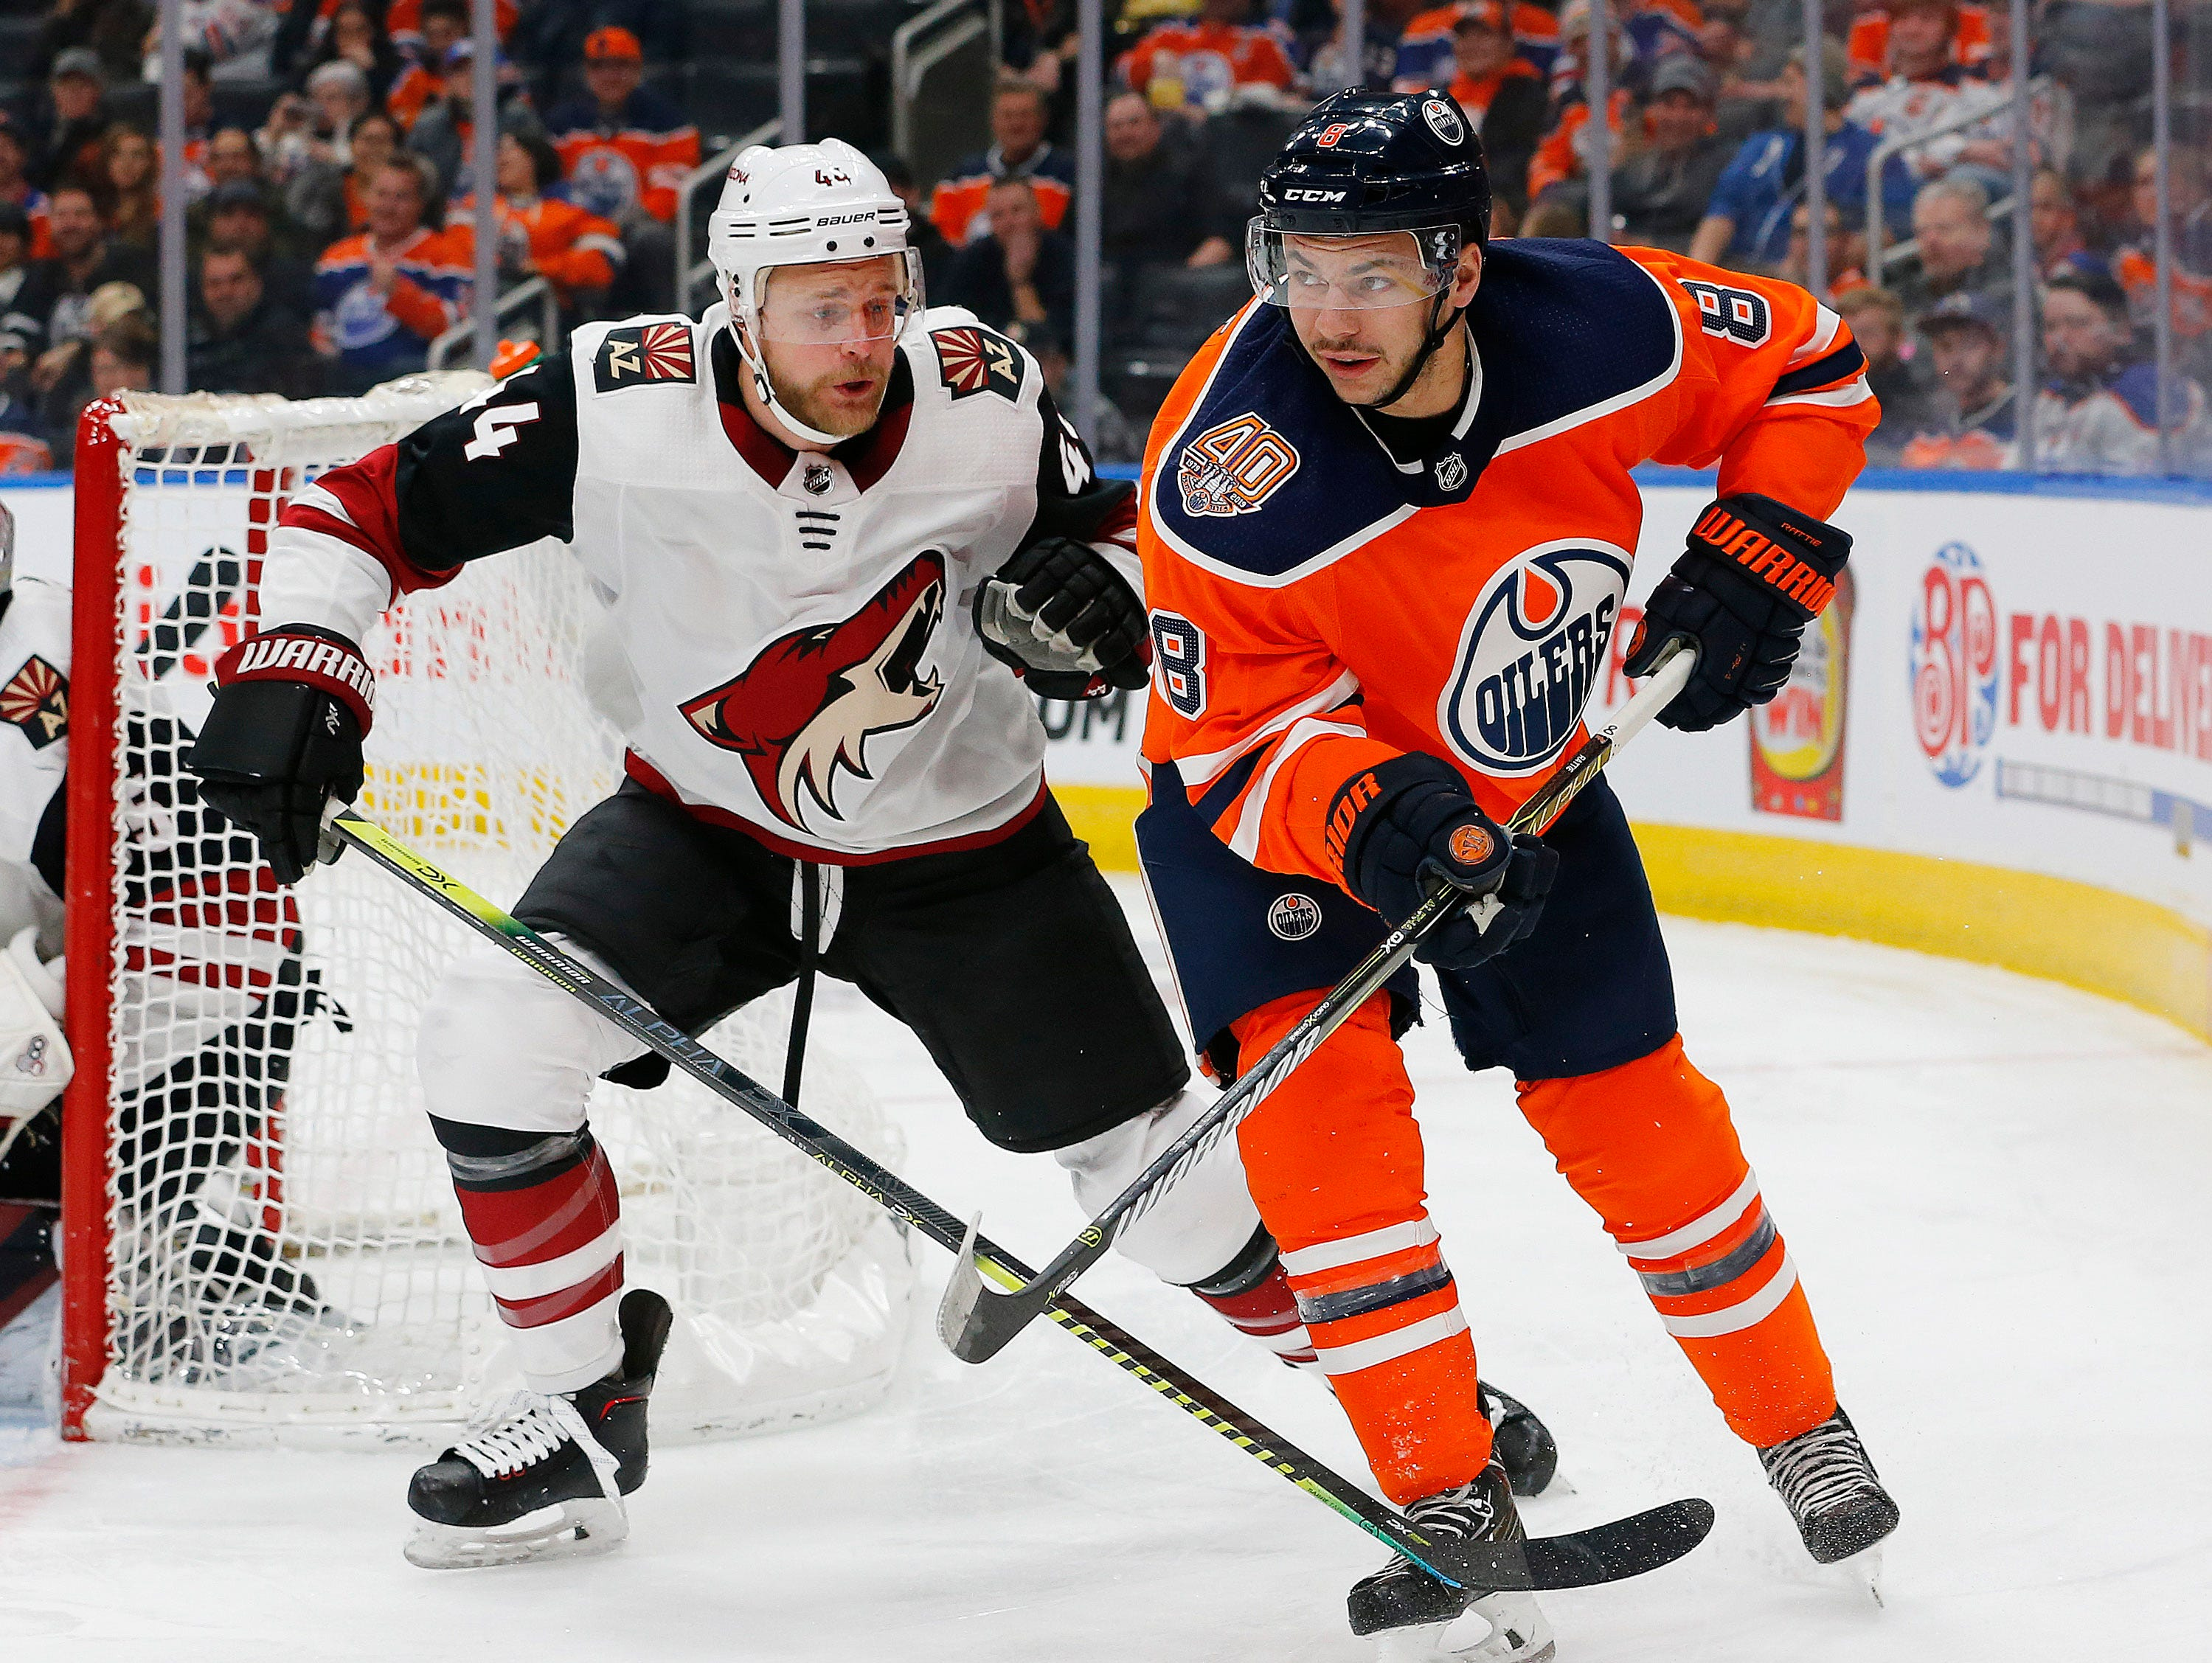 Feb 19, 2019; Edmonton, Alberta, CAN; Arizona Coyotes defensemen Kevin Connauton (44) and Edmonton Oilers forward Ty Rattie (8) look for a loose puck during the first period at Rogers Place. Mandatory Credit: Perry Nelson-USA TODAY Sports